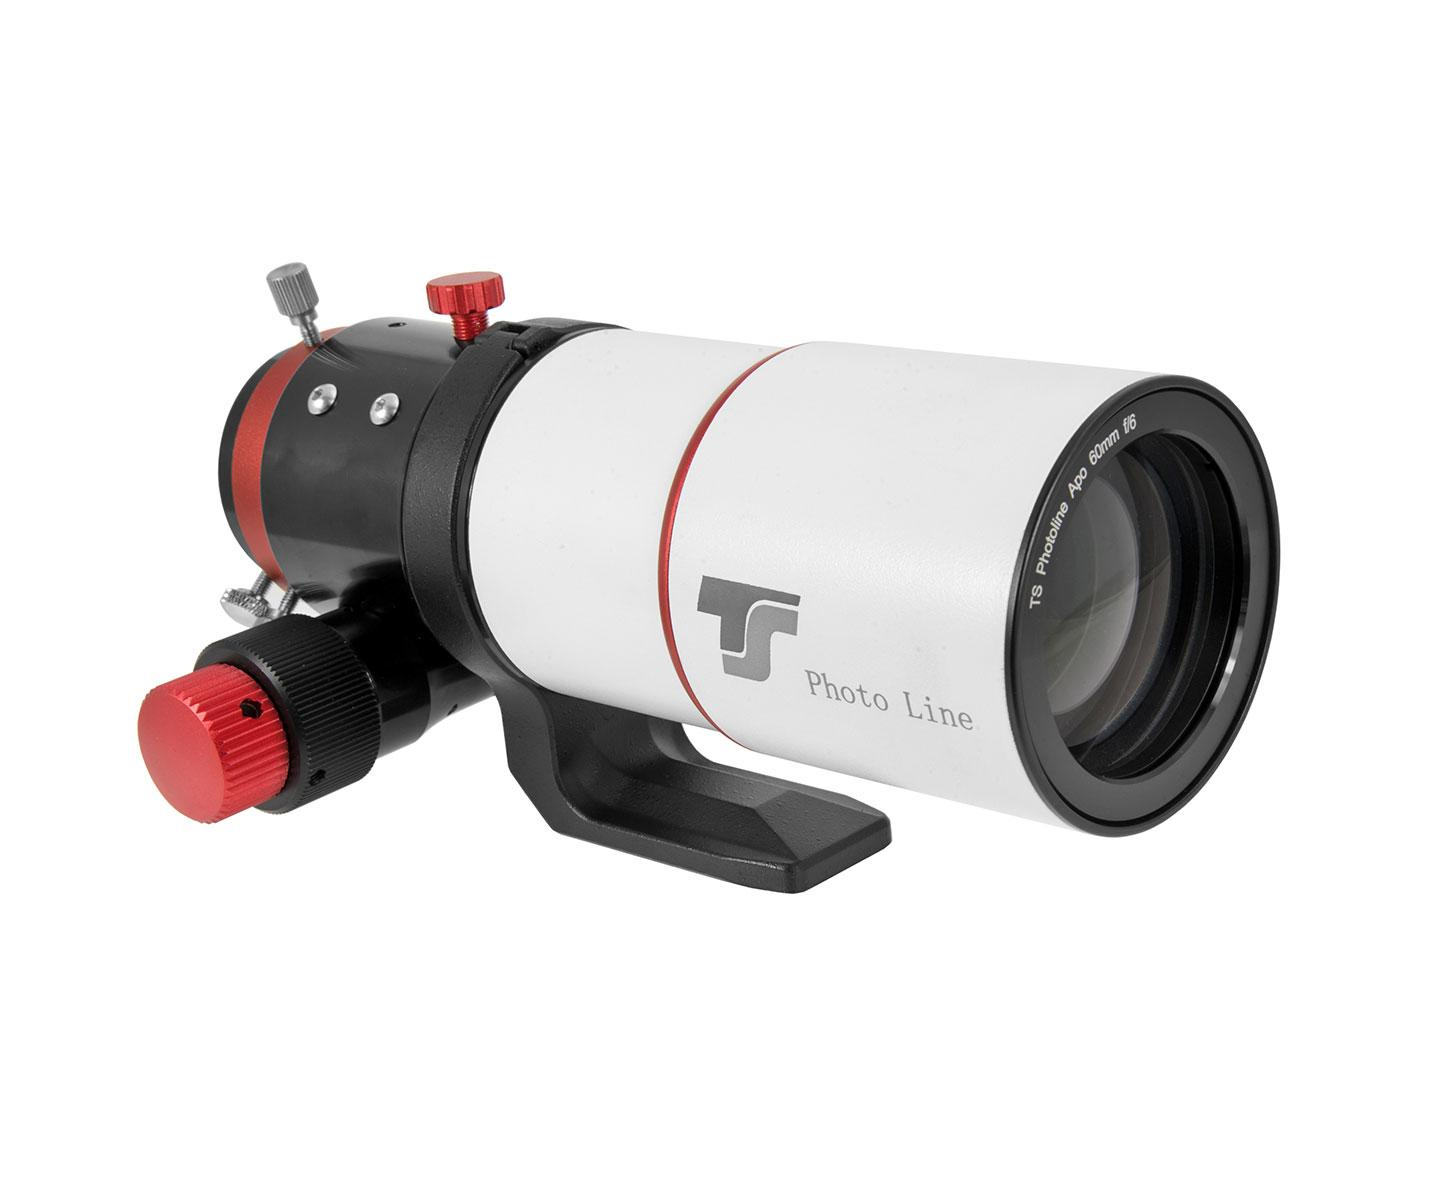 "TS-Optics PhotoLine 60mm f/6 FPL53 Apo - 2"" R&P Focuser - RED Line [EN]"